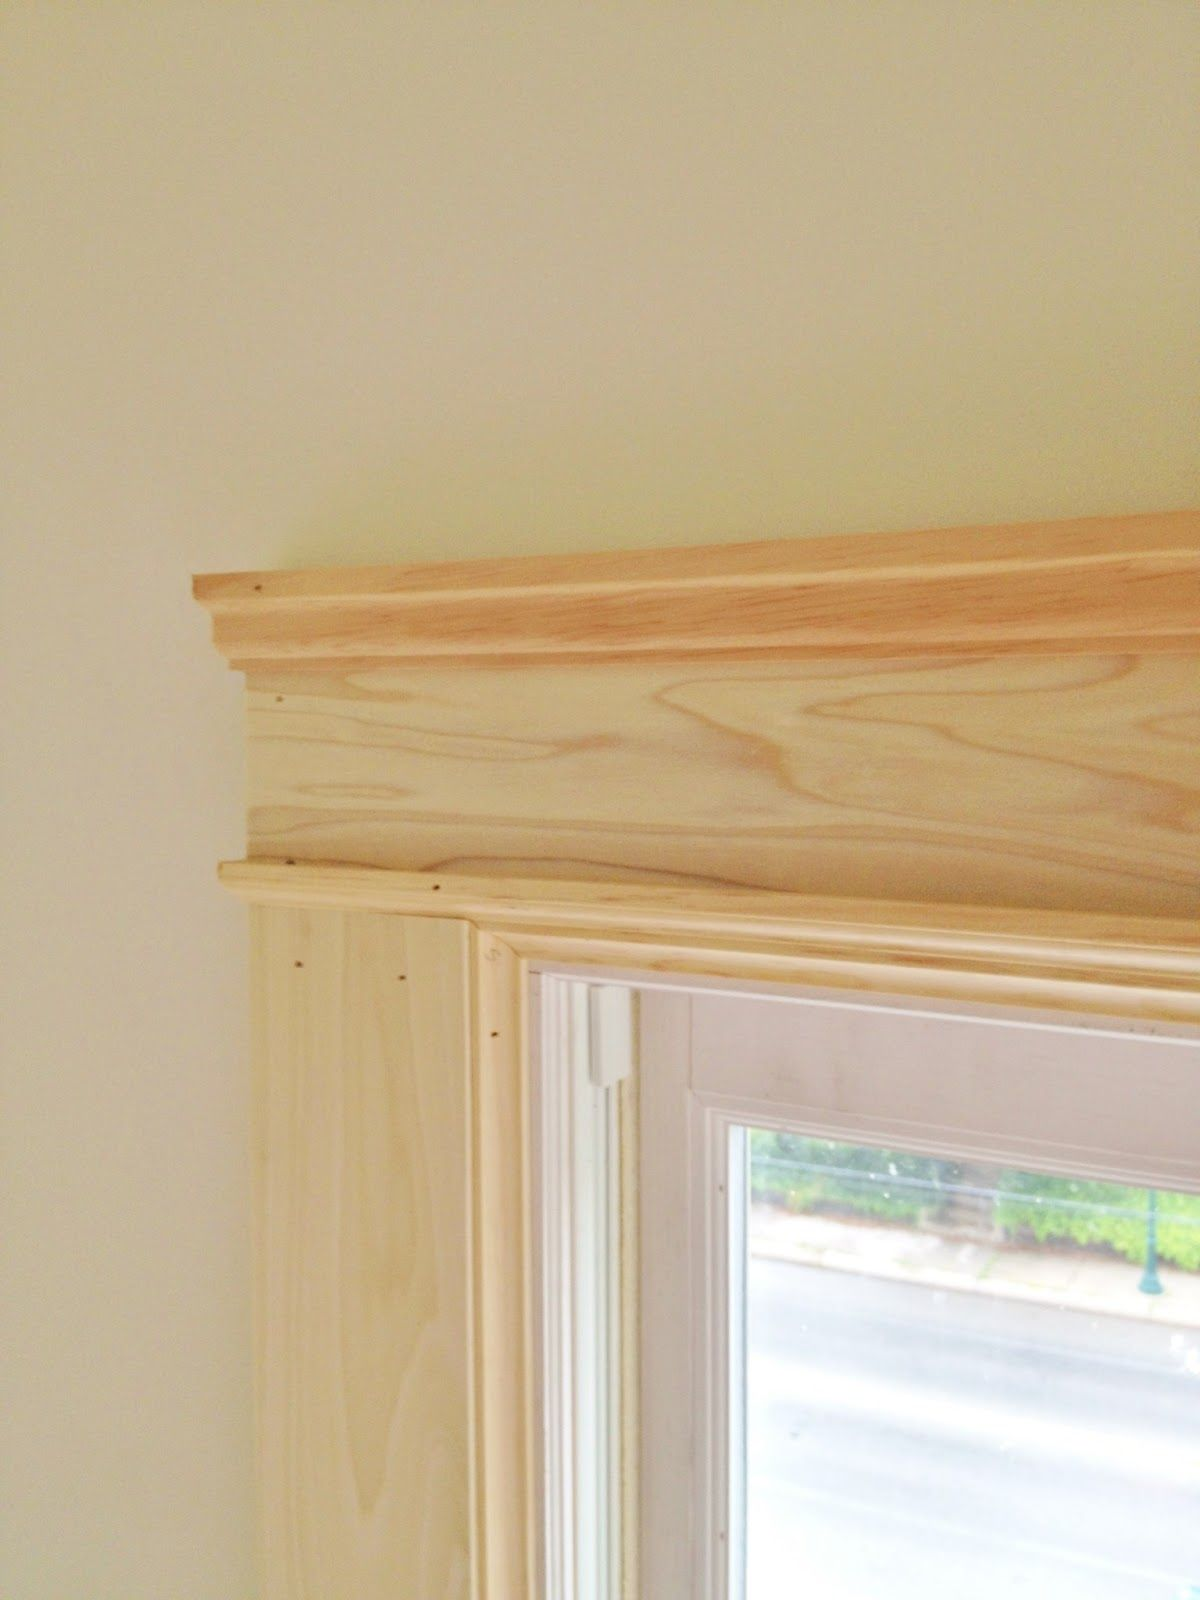 historic interior window trim profiles - Google Search | For the ...